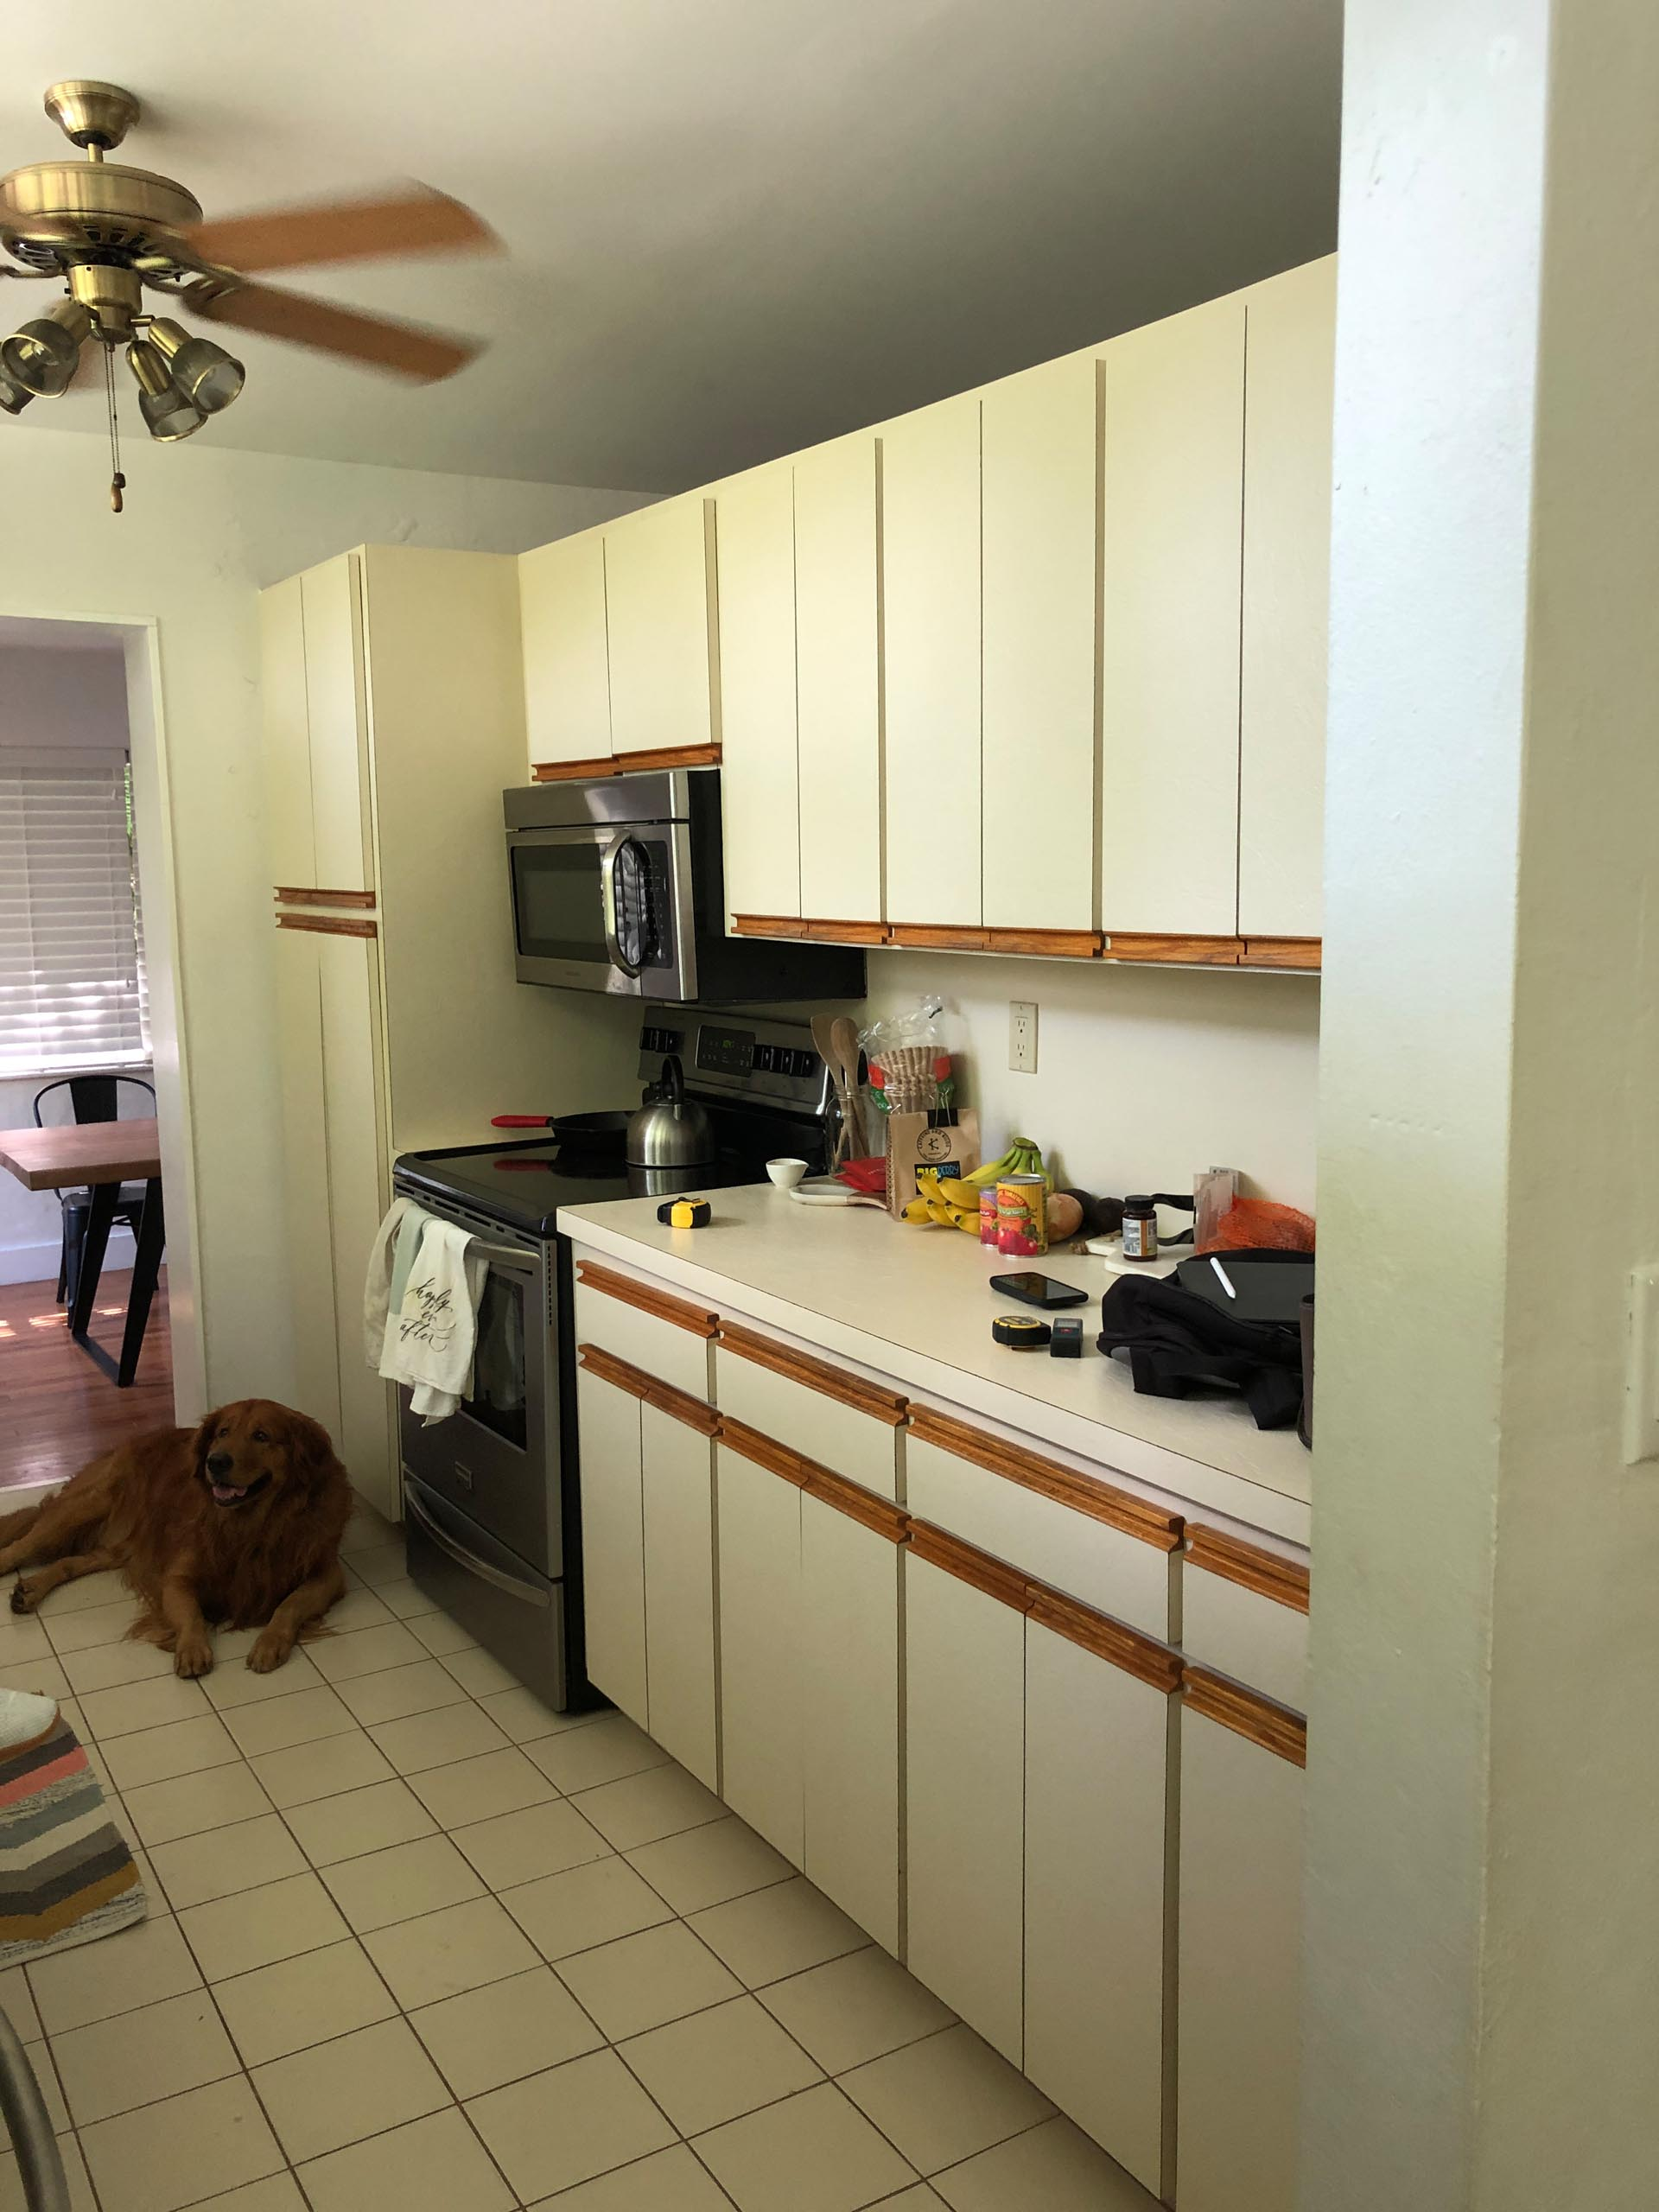 BEFORE - An enclosed and dated kitchen.